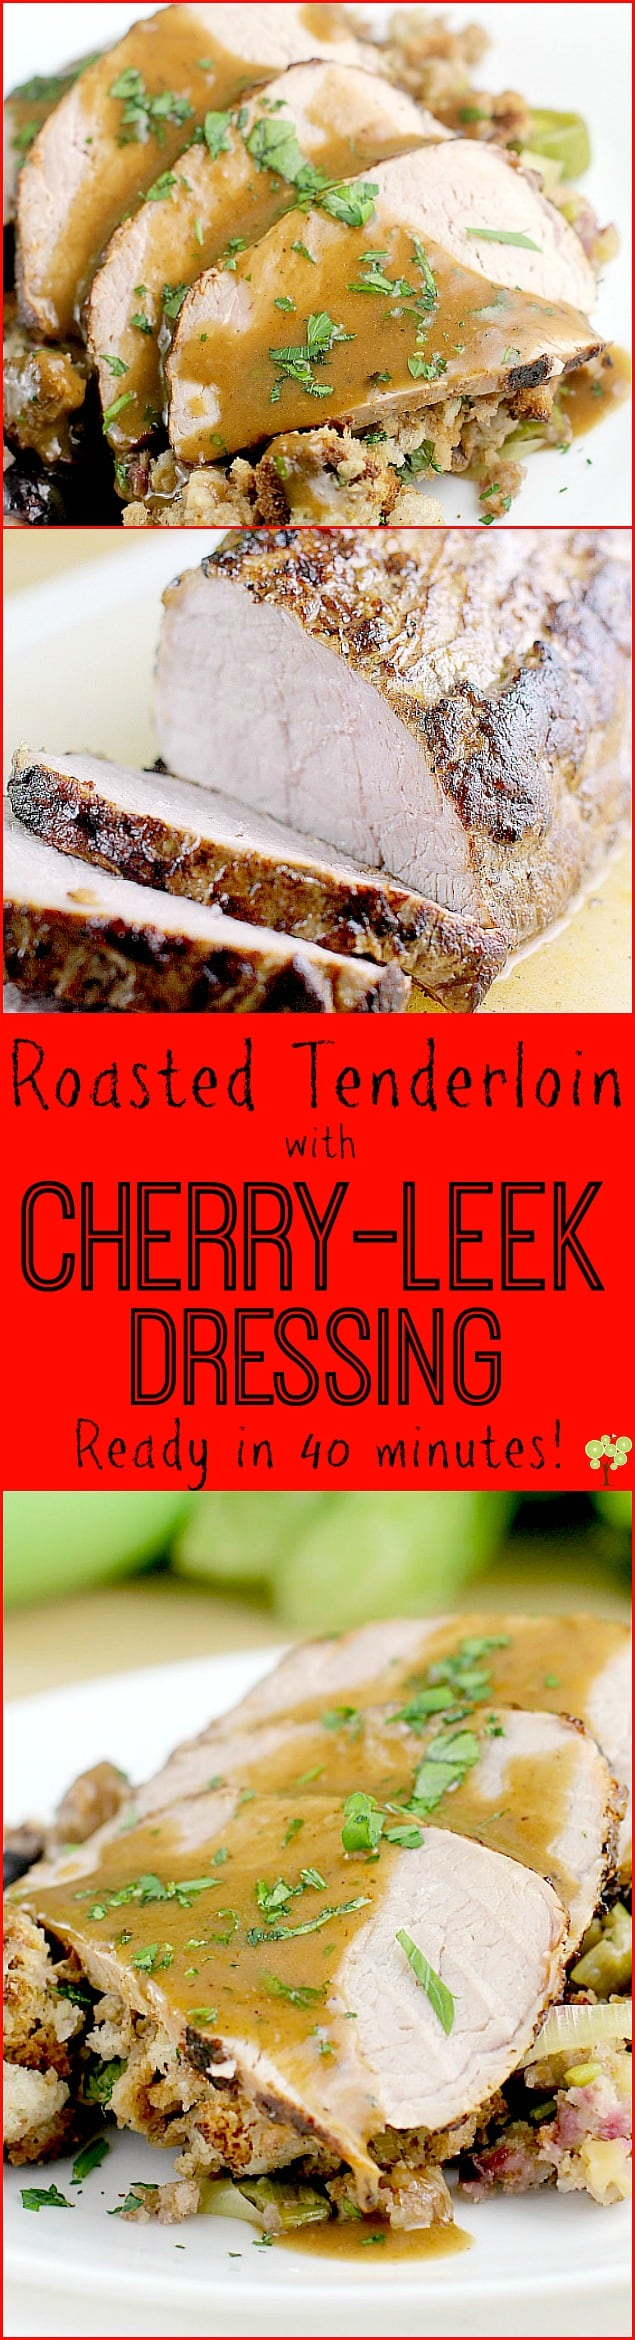 Roasted Tenderloin with Cherry-Leek Dressing http://wp.me/p4qC4h-3Hd #RealFlavorRealFast #ad